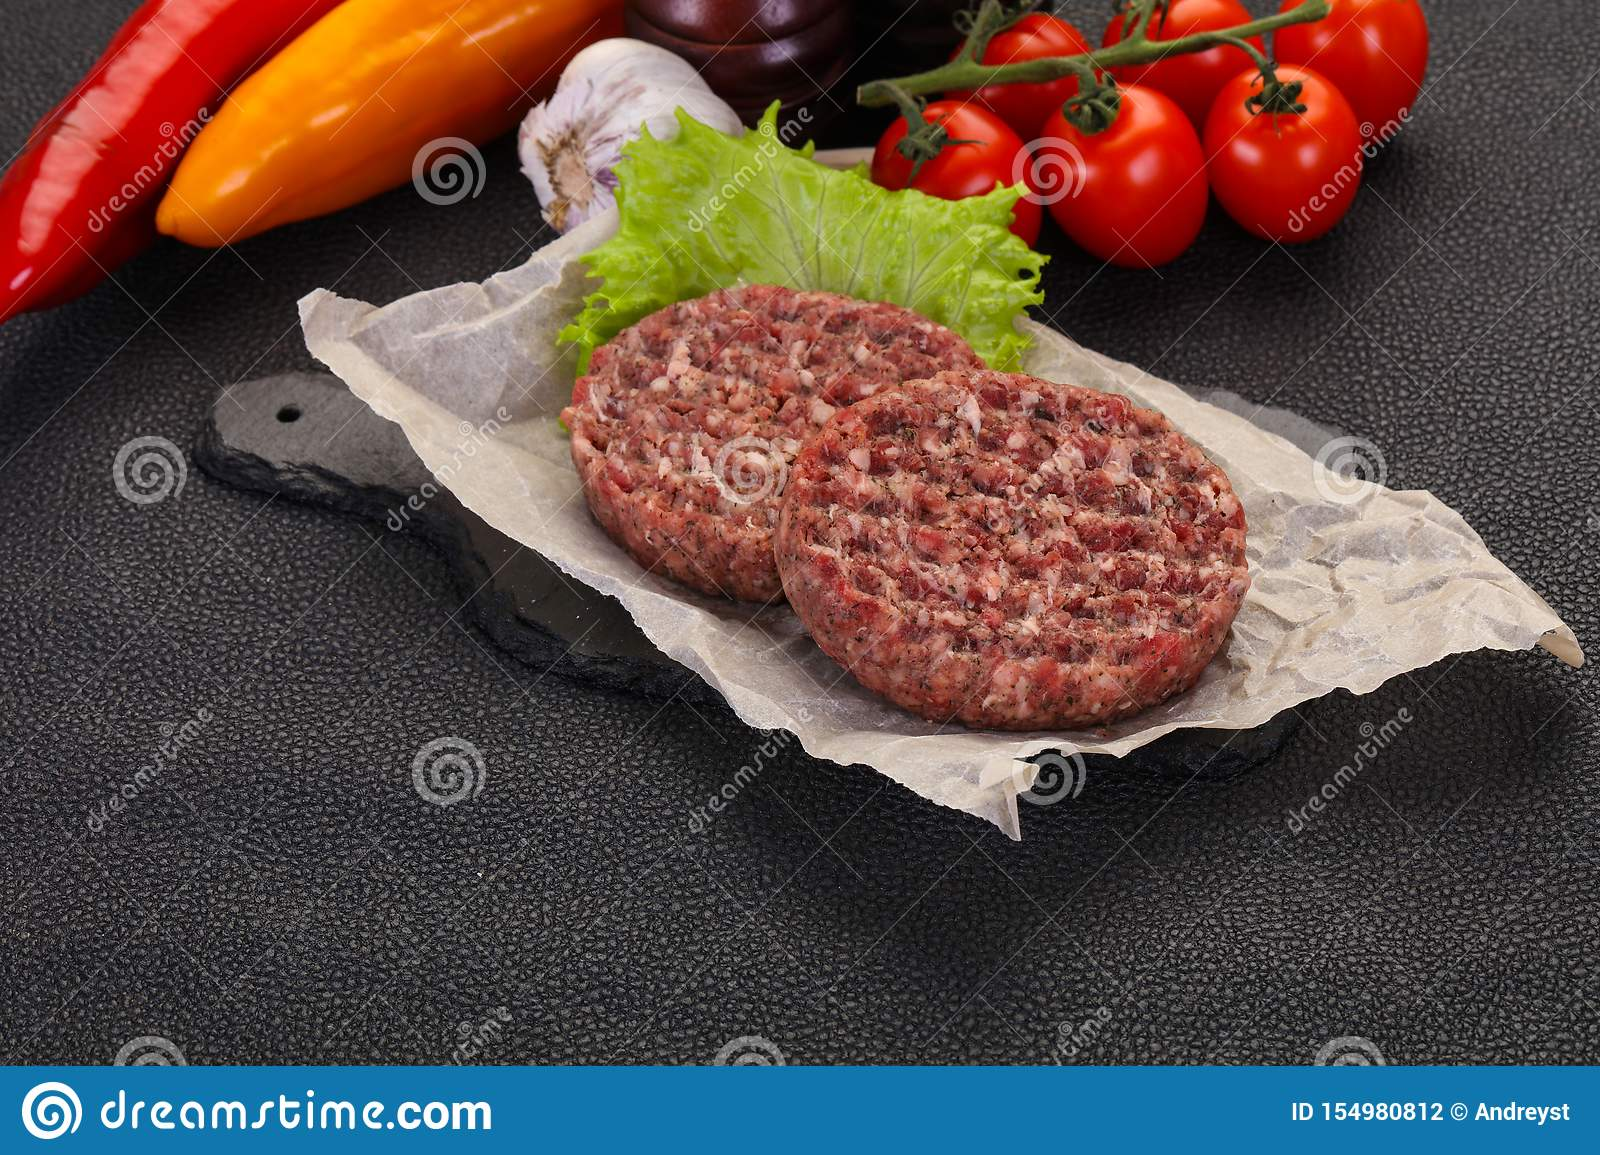 Raw burger cutlet